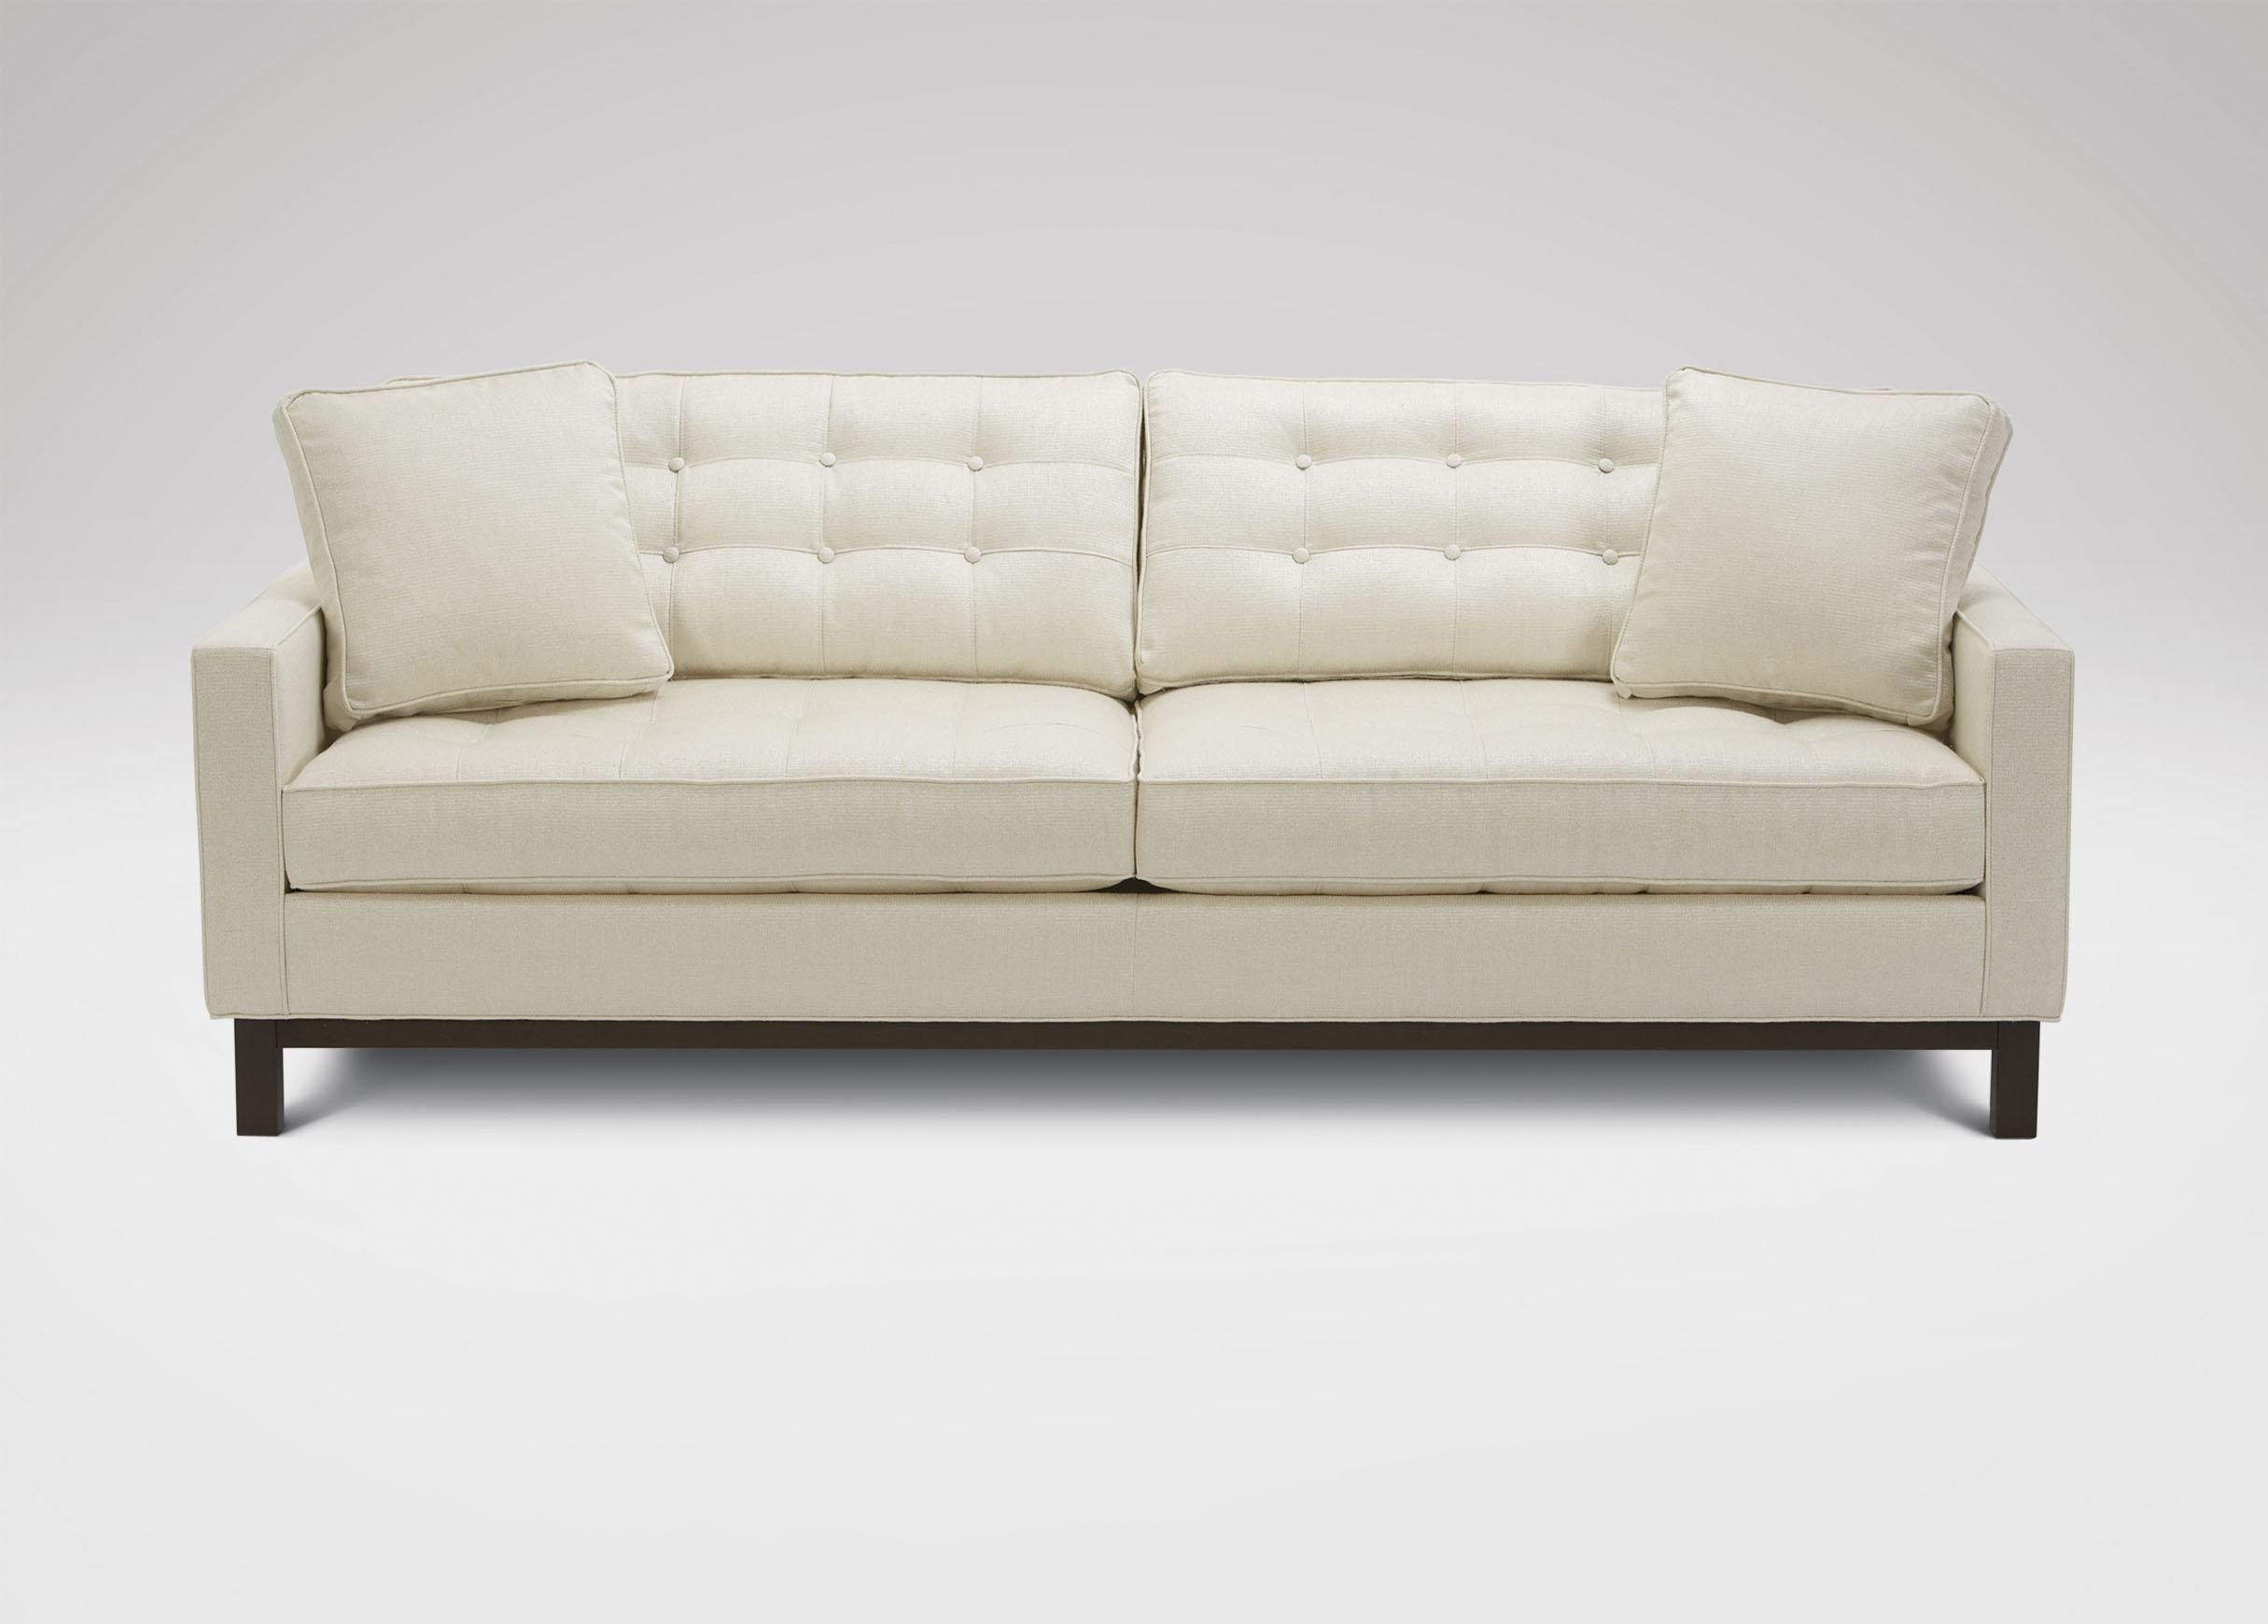 Melrose Sofa | Sofas & Loveseats For Ethan Allen Sofas And Chairs (View 3 of 20)